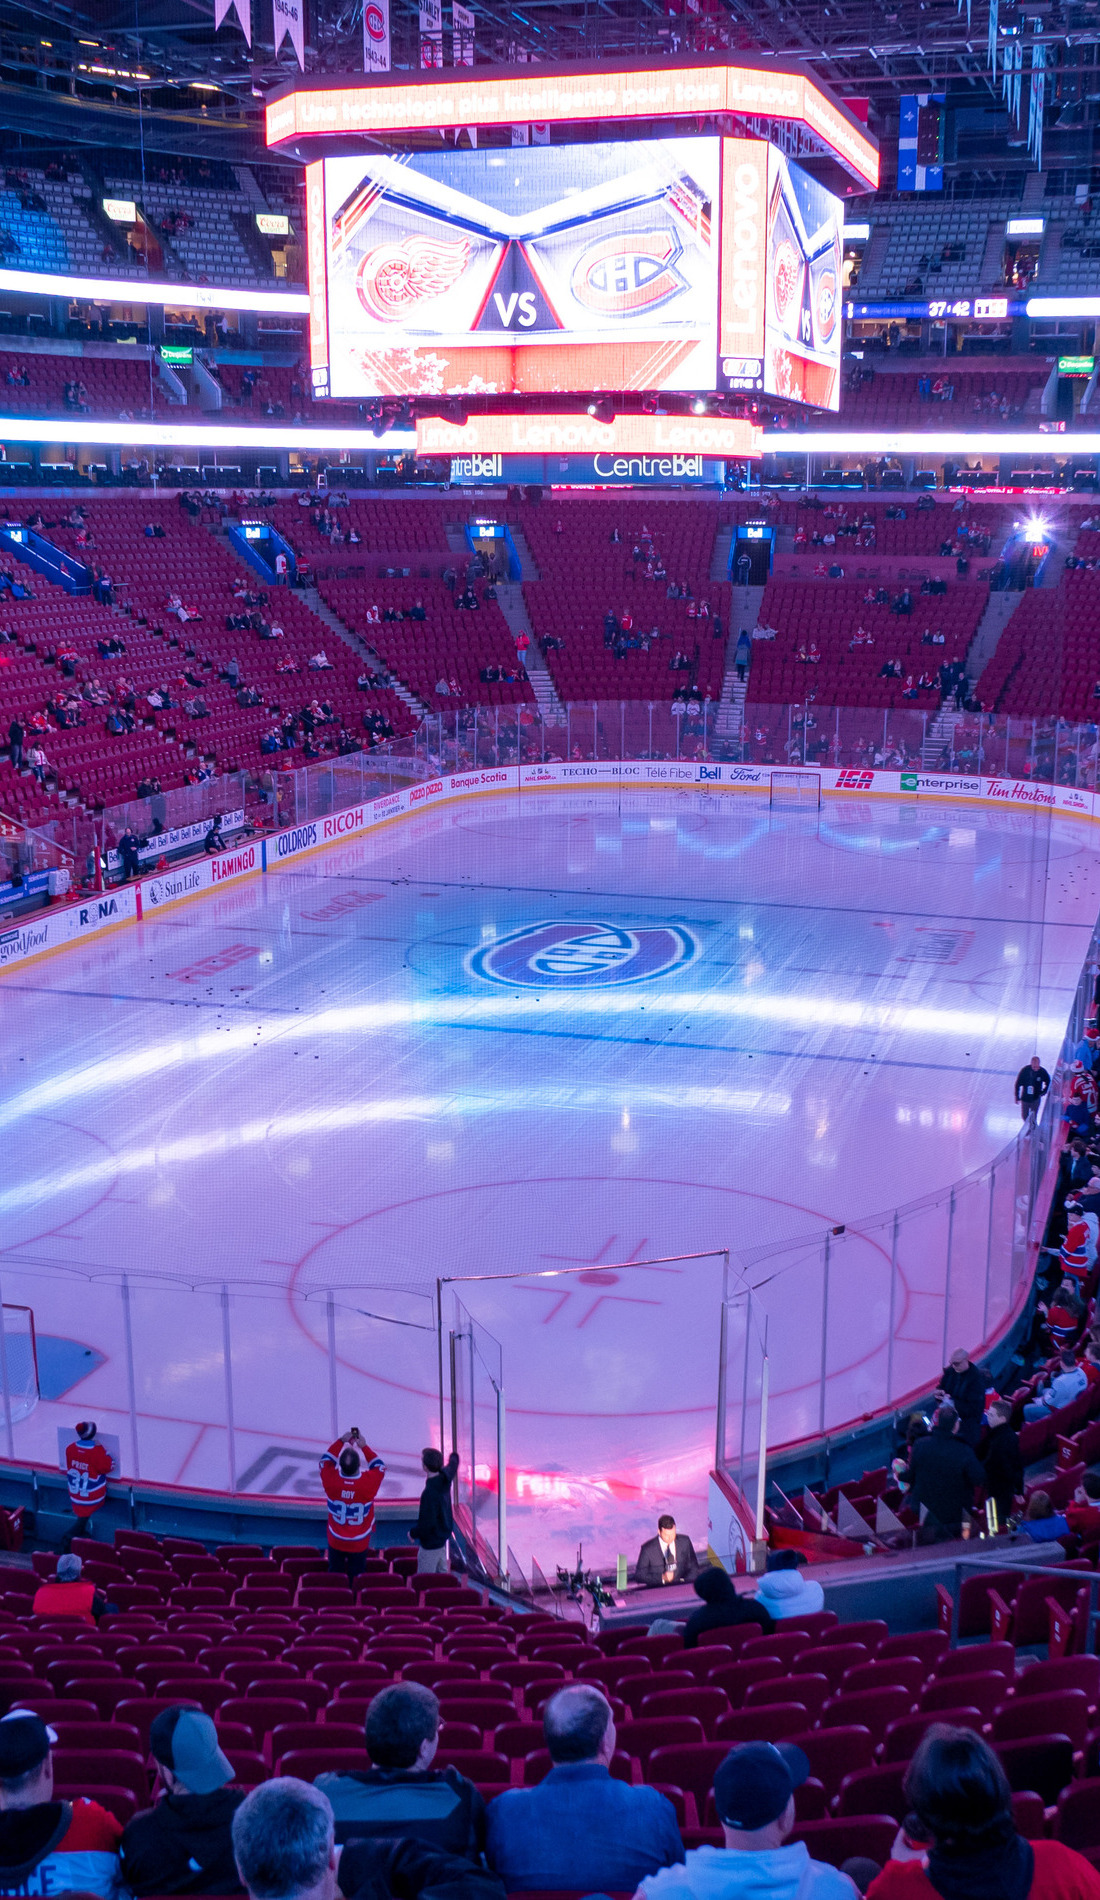 A Montreal Canadiens live event